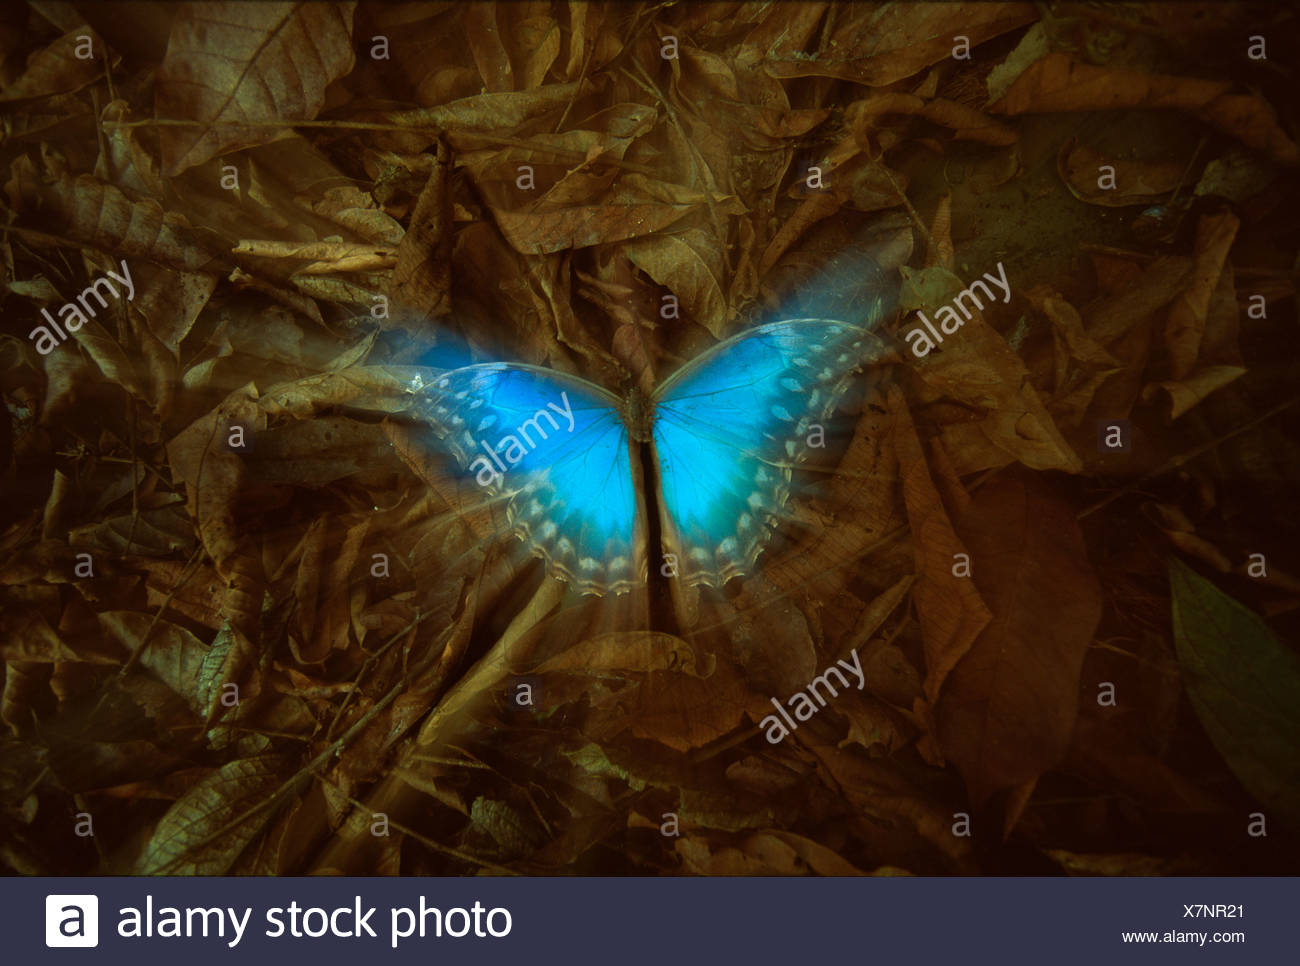 A dead Blue Morpho butterfly lies amonst the brown leaves on forest floor, Corcovado National Park, Costa Rica (Morpho peleides) - Stock Image